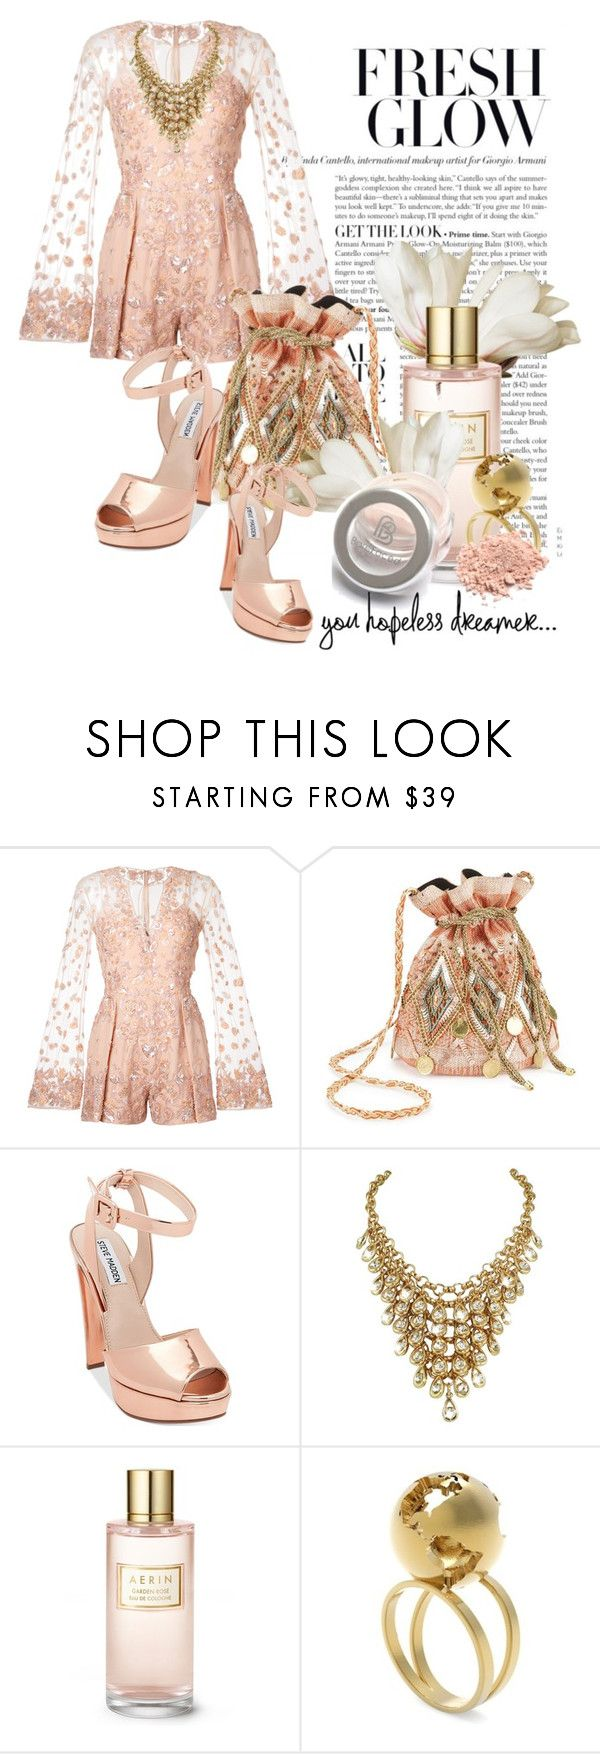 """A Fresh Glow"" by queenrachietemplateaddict ❤ liked on Polyvore featuring Zuhair Murad, Miss Selfridge, Steve Madden, Estée Lauder, Artelier, peach, Heels, pale, playsuit and romper"